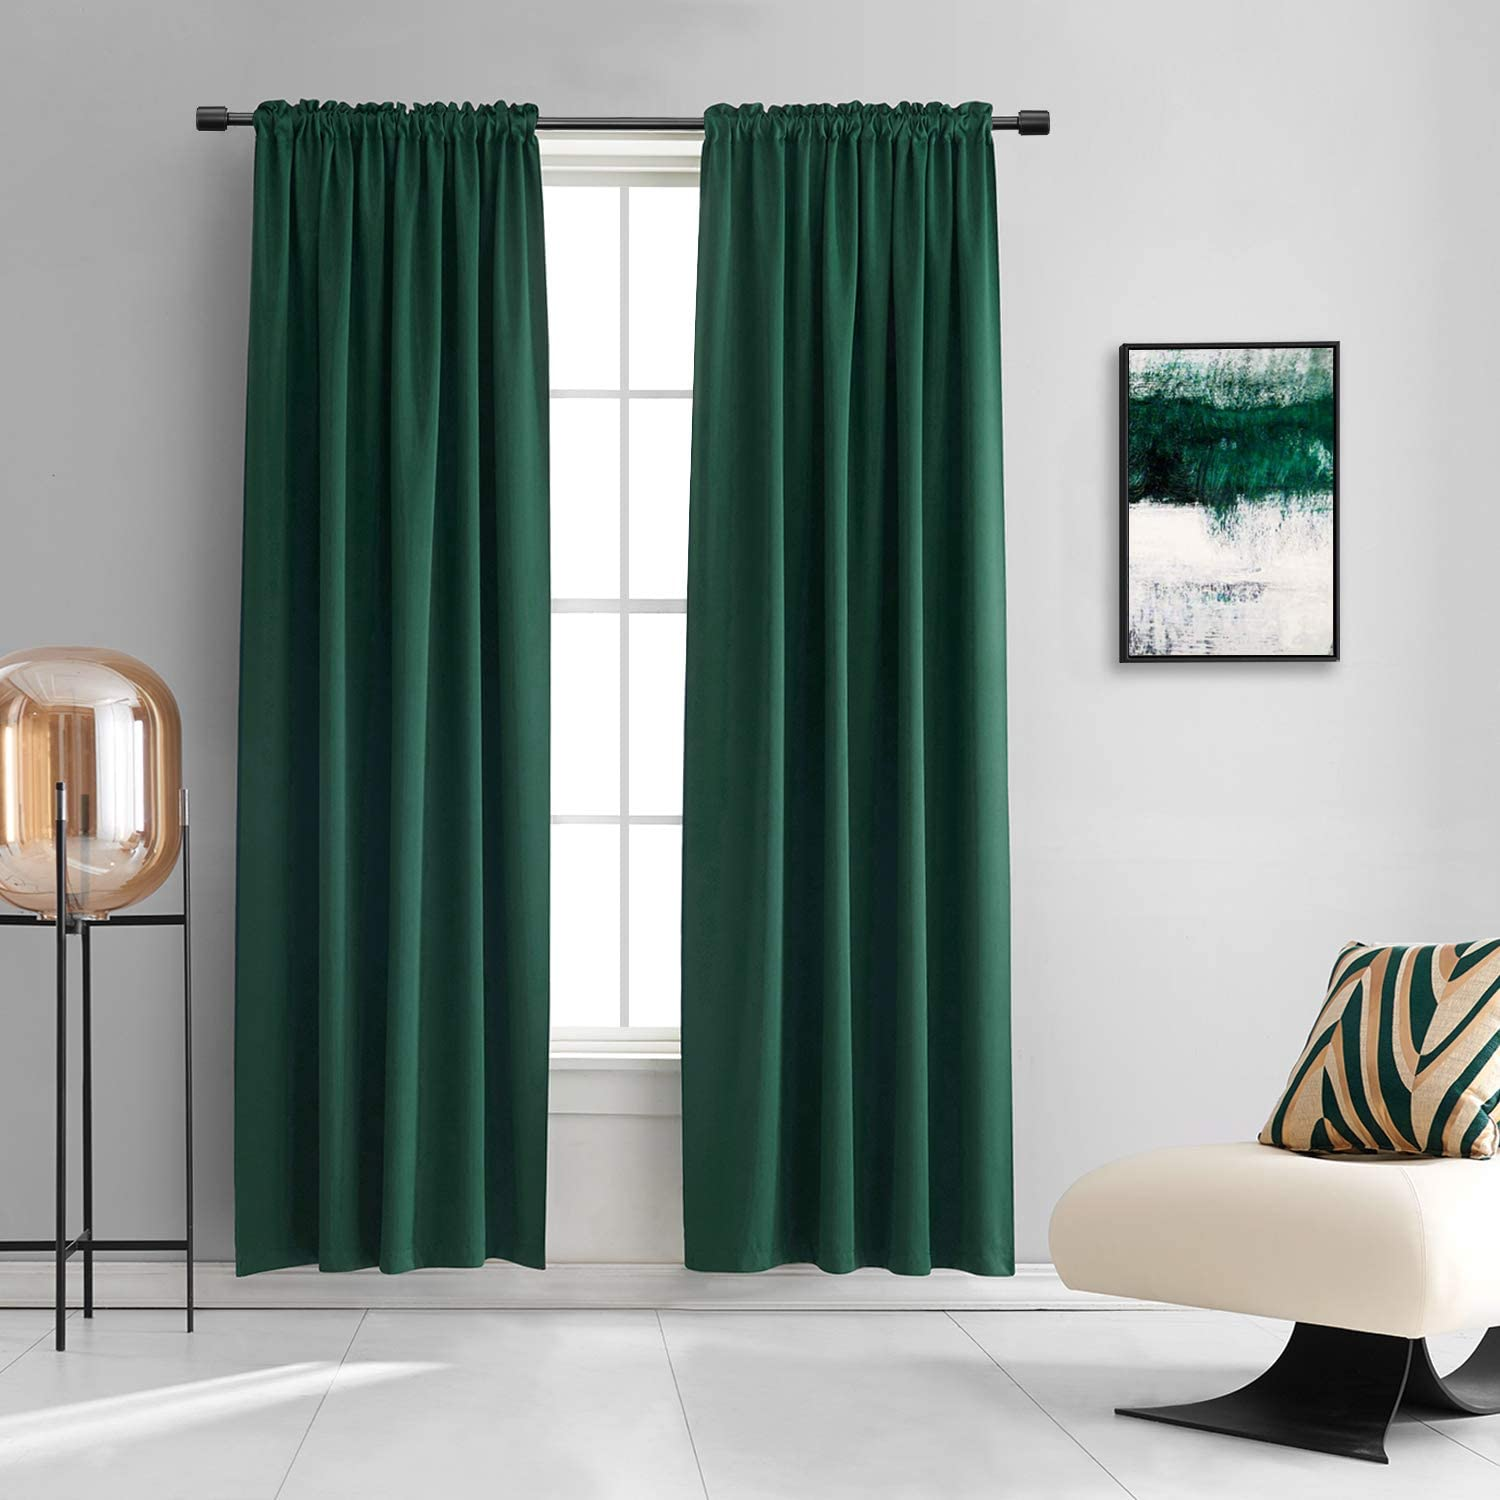 DONREN Hunter Green Blackout Thermal Insulating Window Curtains for Bedroom - 90 Inch Length Room Darkening Curtain Panels for Living Room with Rod Pocket,2 Panels